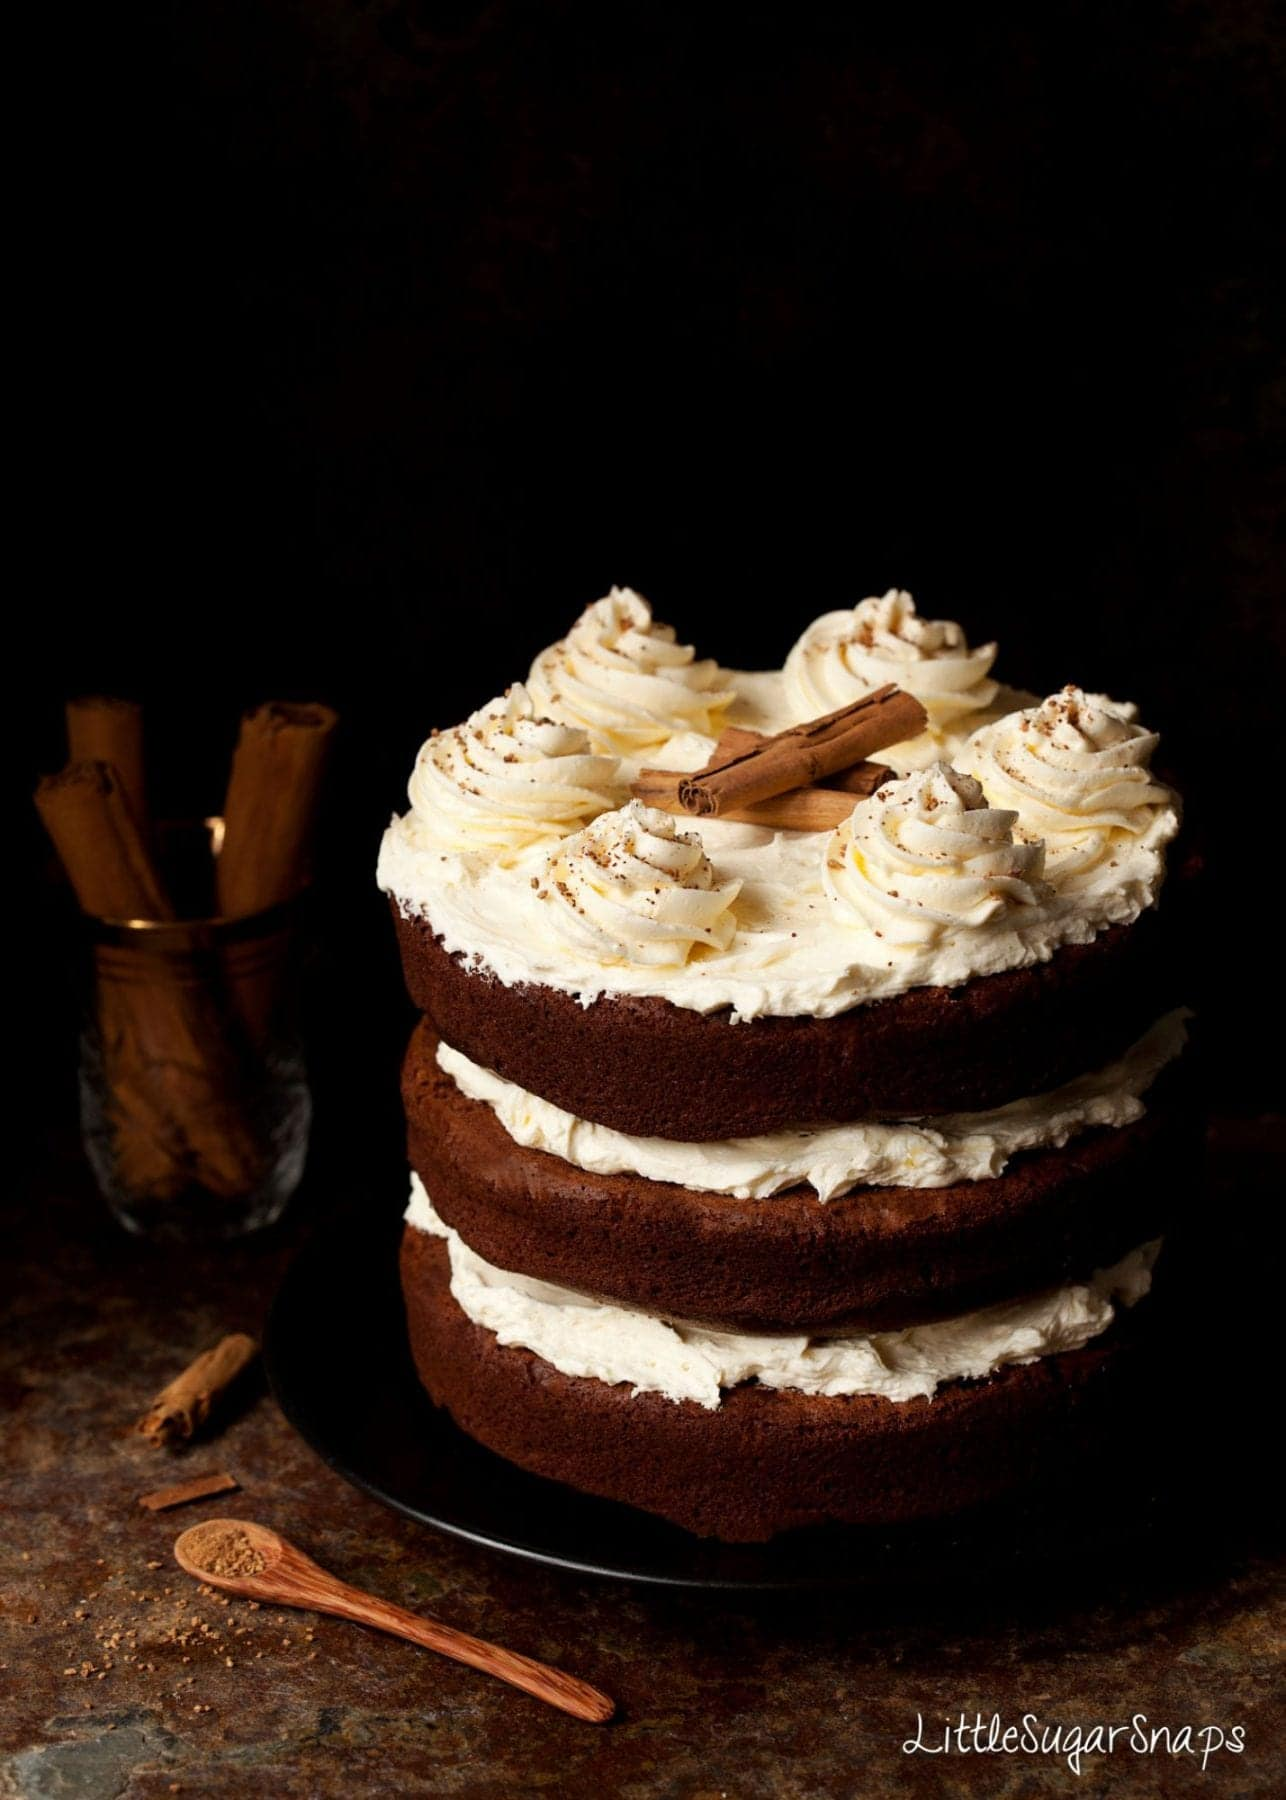 Cinnamon Chocolate Cake